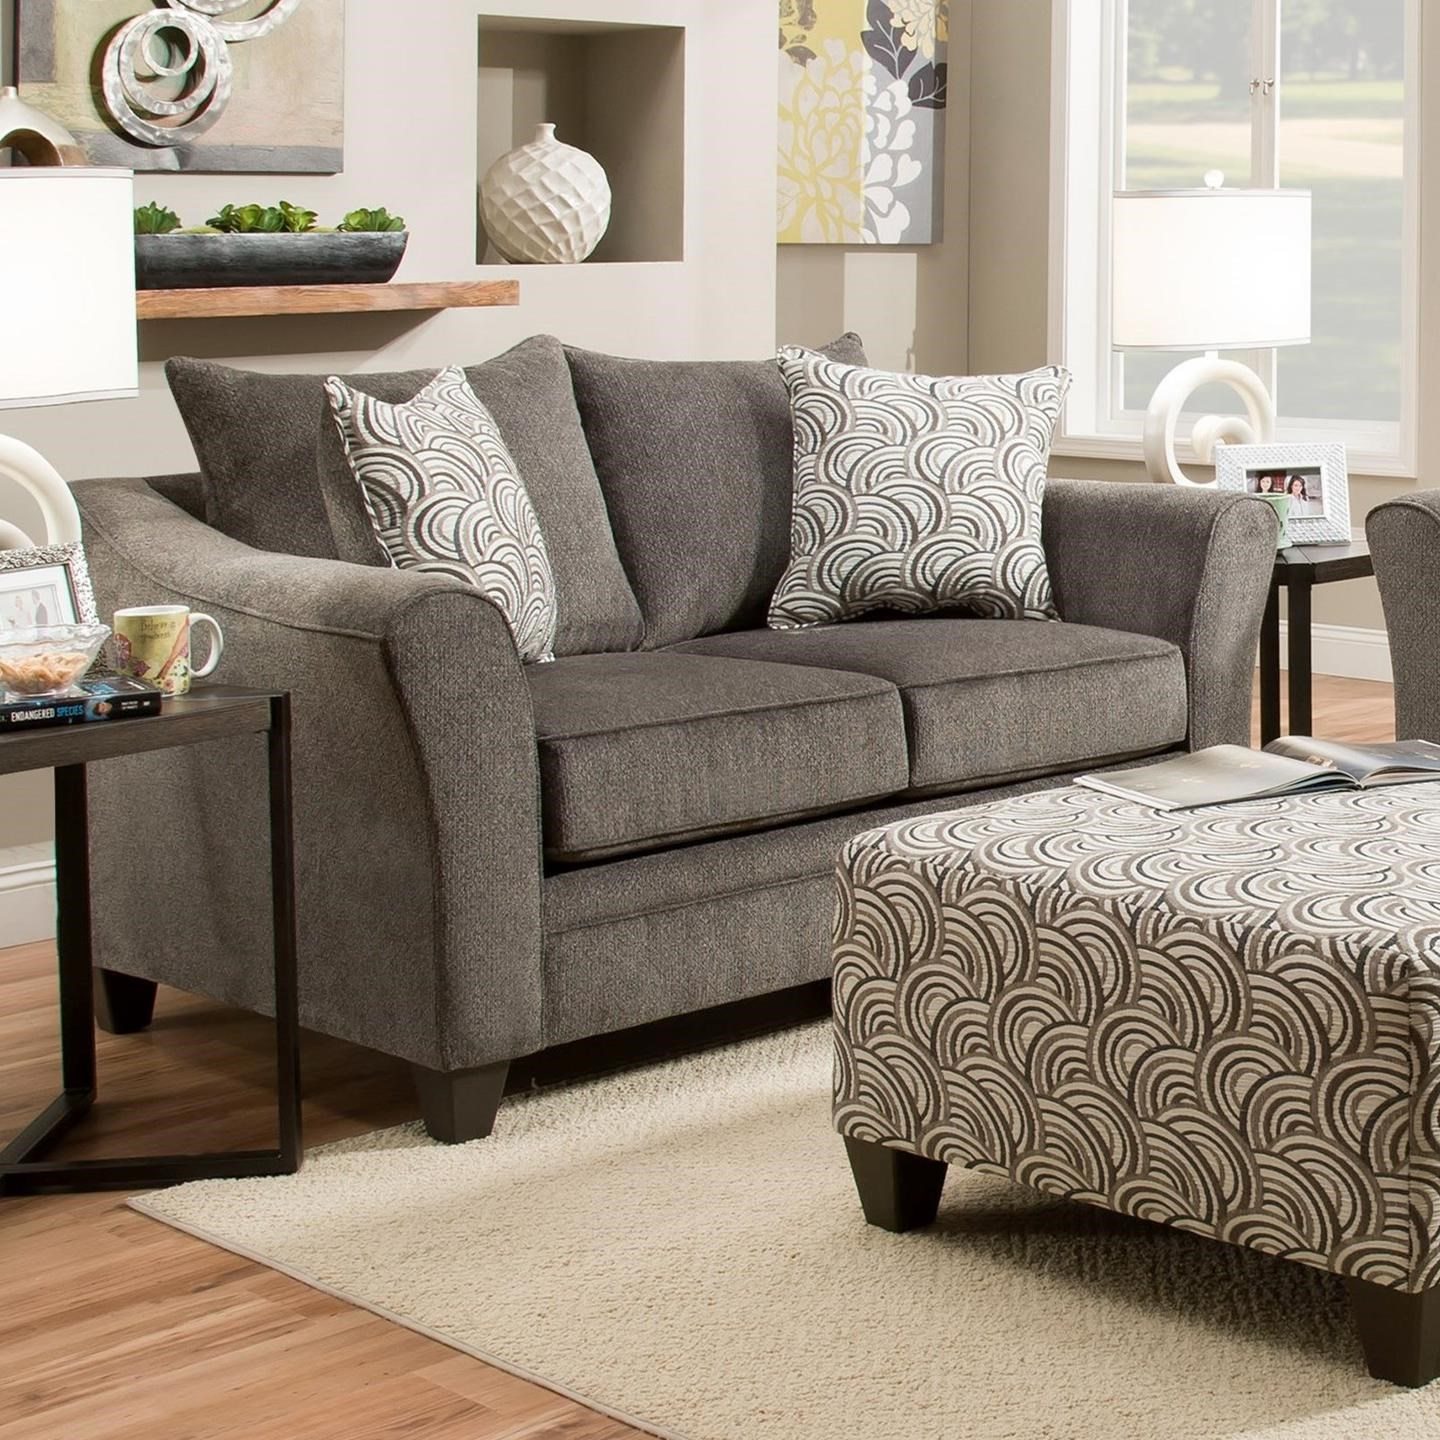 United Furniture Industries 6485 Transitional Loveseat - Item Number: 6485Loveseat-AlbanyPewter